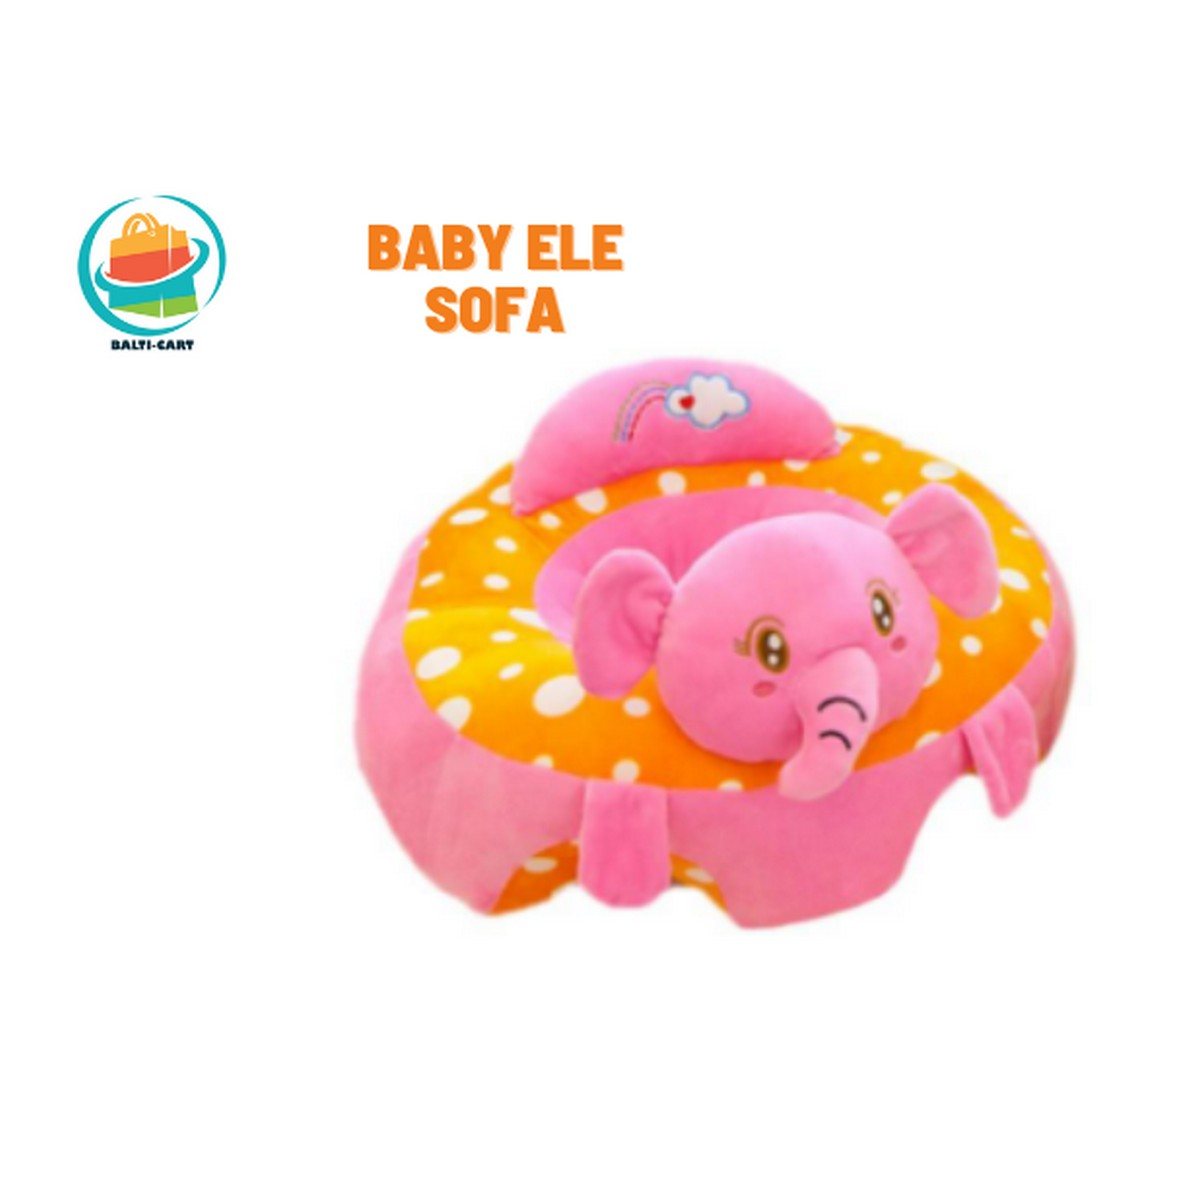 Balti Cart Baby Plush Seats Sofa Support Chair Cartoon Baby Seats Sofa Support Soft Plush For Instant Learning To Sit Sofa For 4 To 12 Months Baby In Lovely Characters.